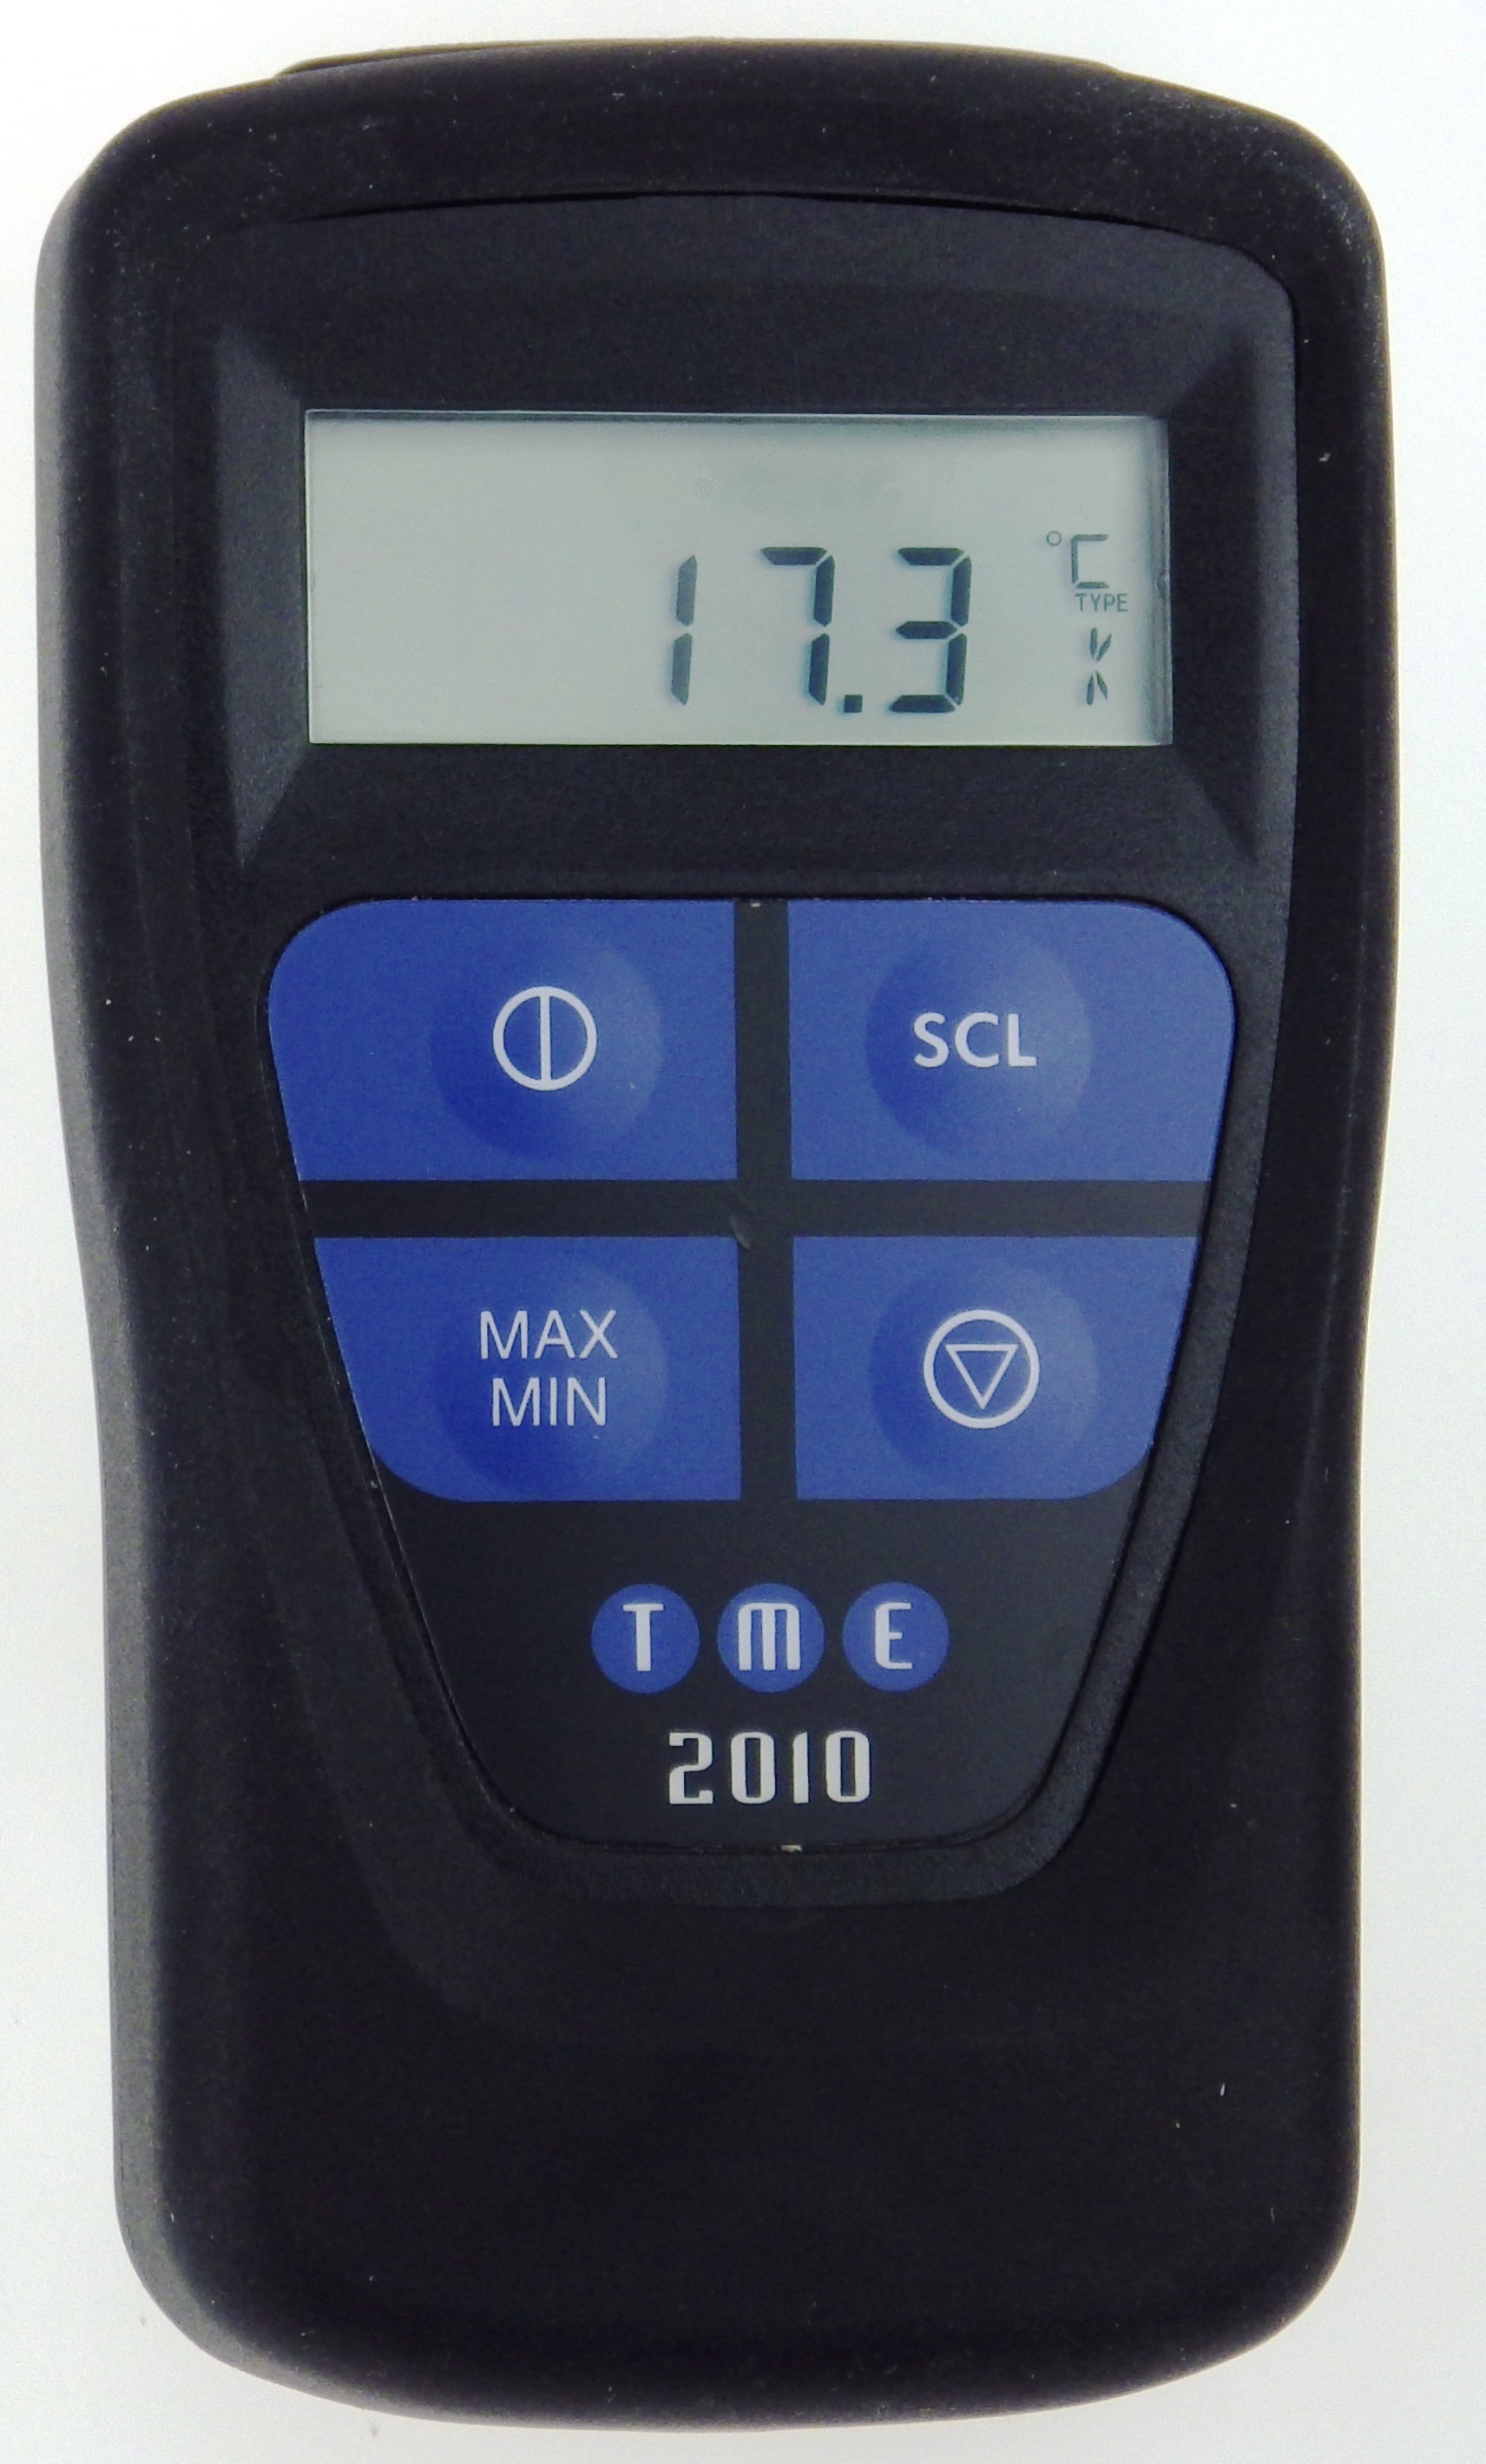 This Waterproof, Self-Calibrating Thermometer has Max/Min functions, Max/Min/Hold measurement, hold ...